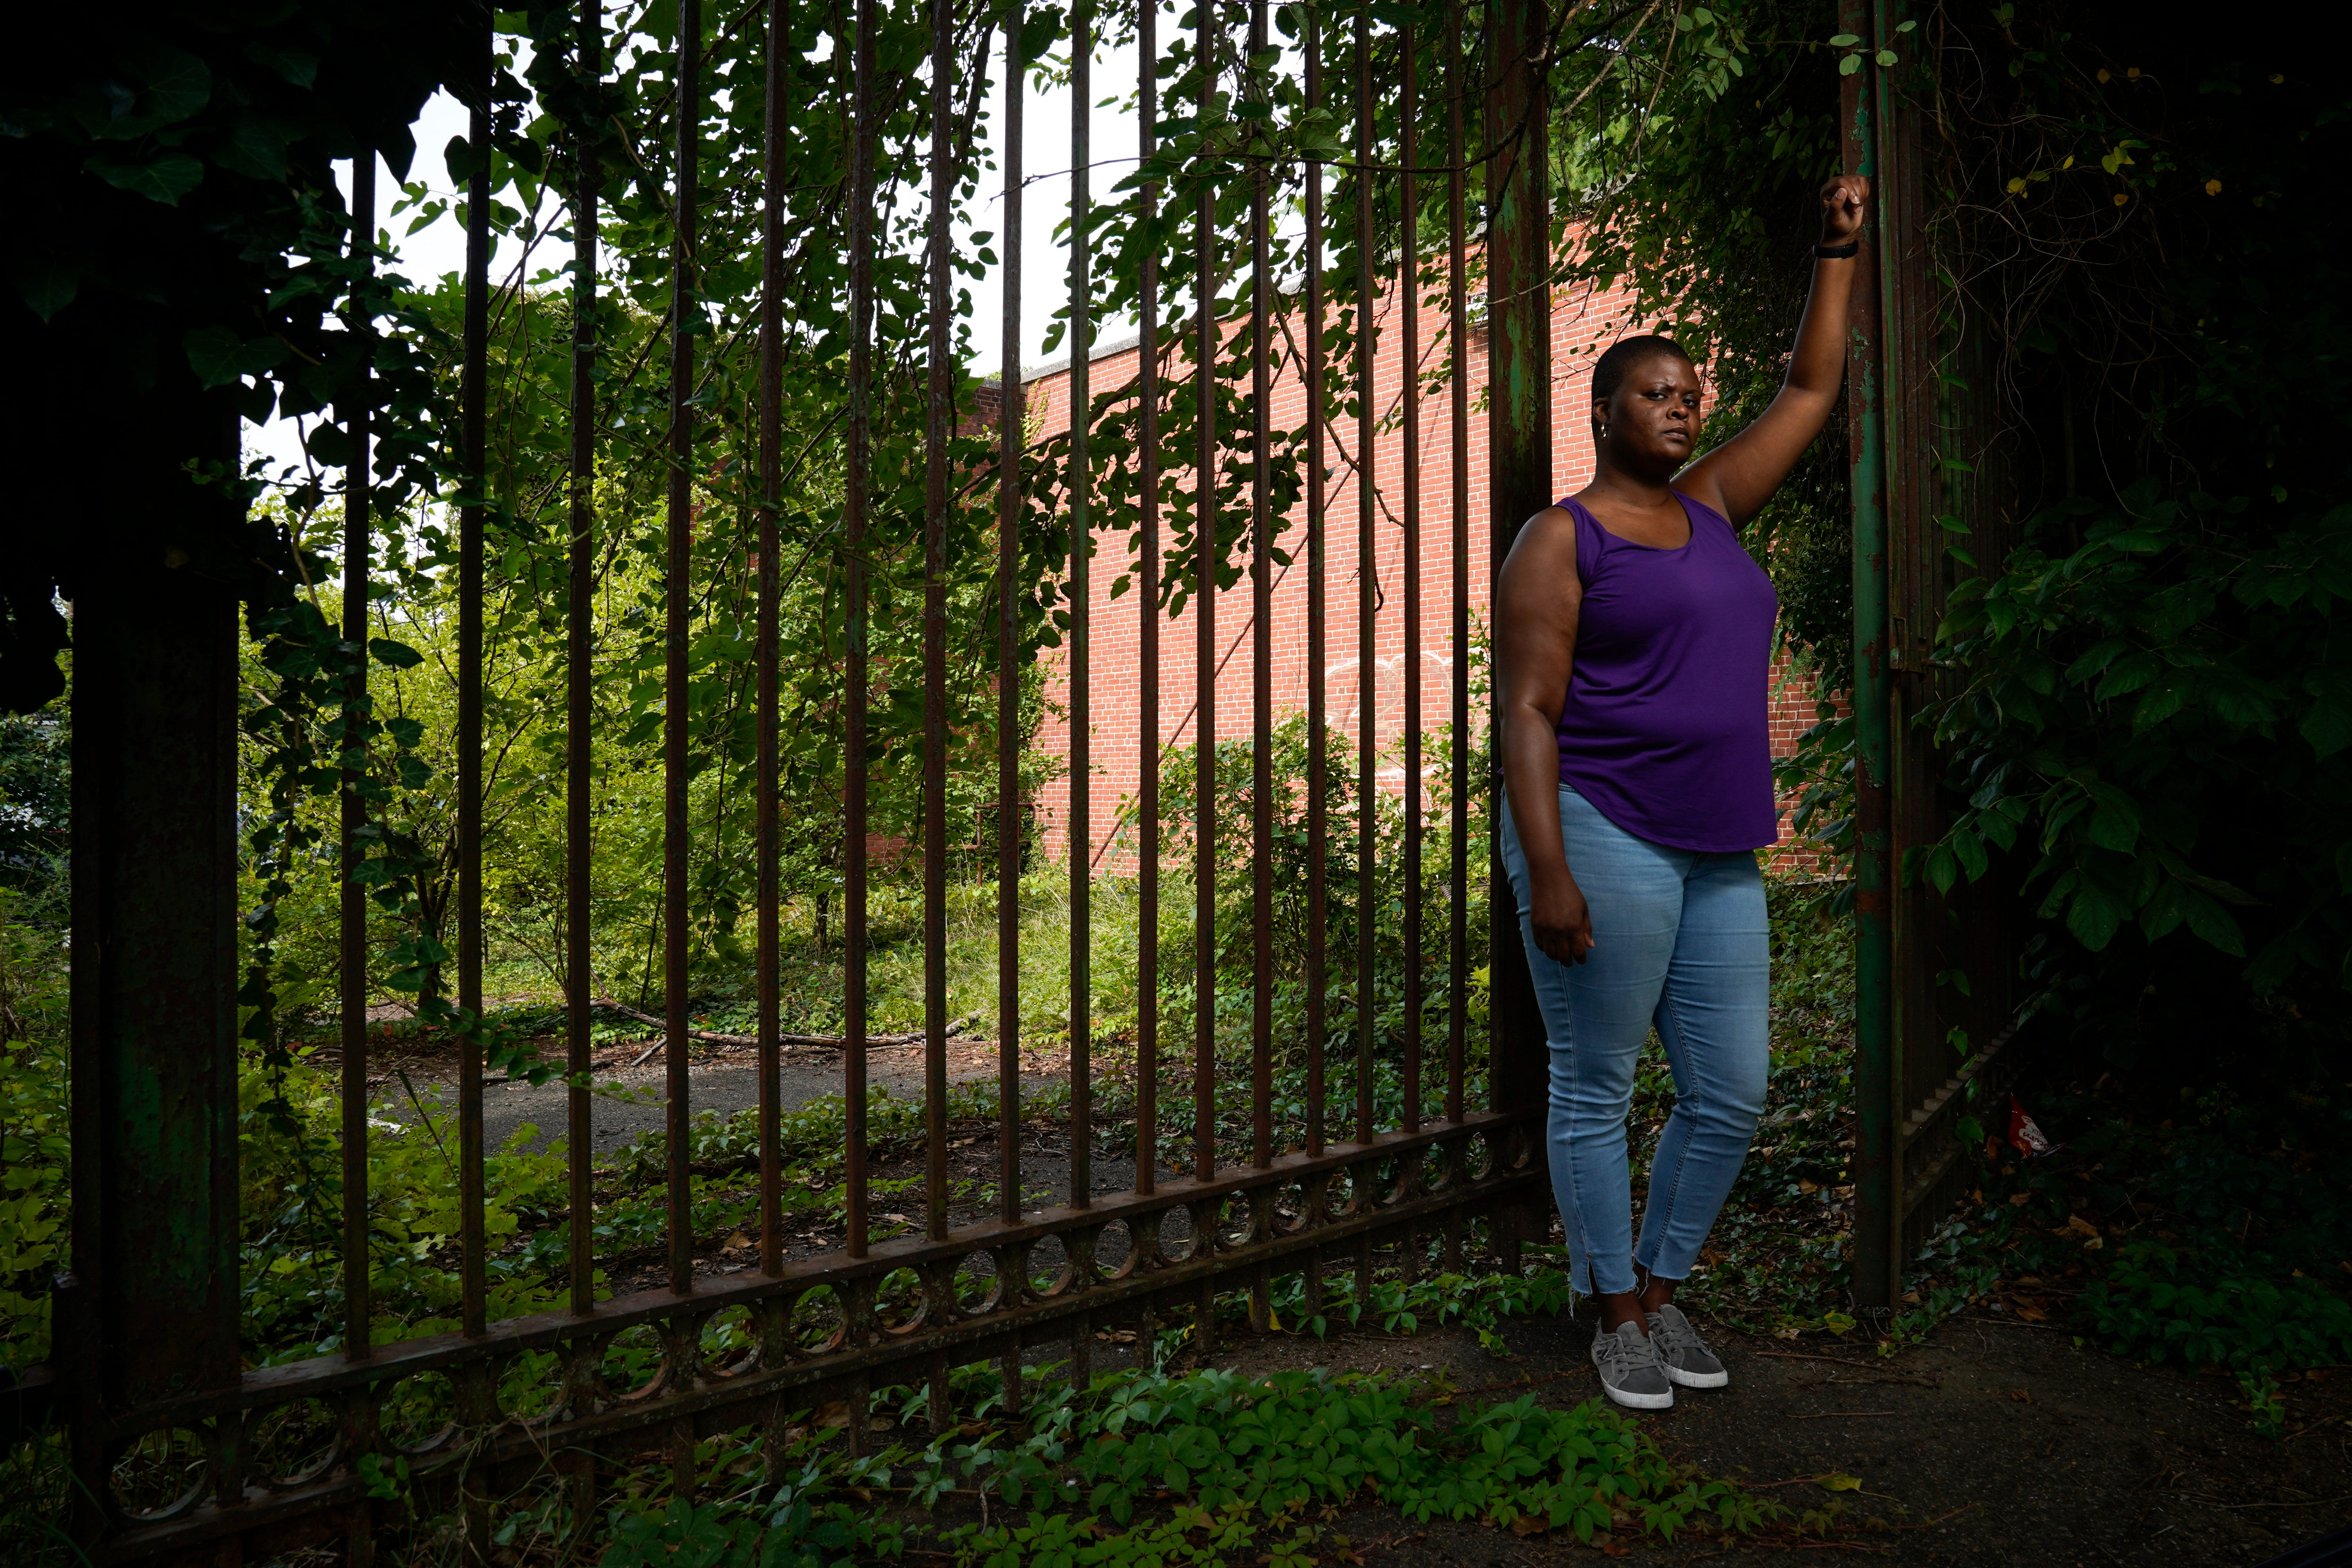 Chimére Smith of Baltimore is a former teacher who became a long-haul COVID-19 advocate after her own bout with the disease that left her with unrelenting brain fog and pain.